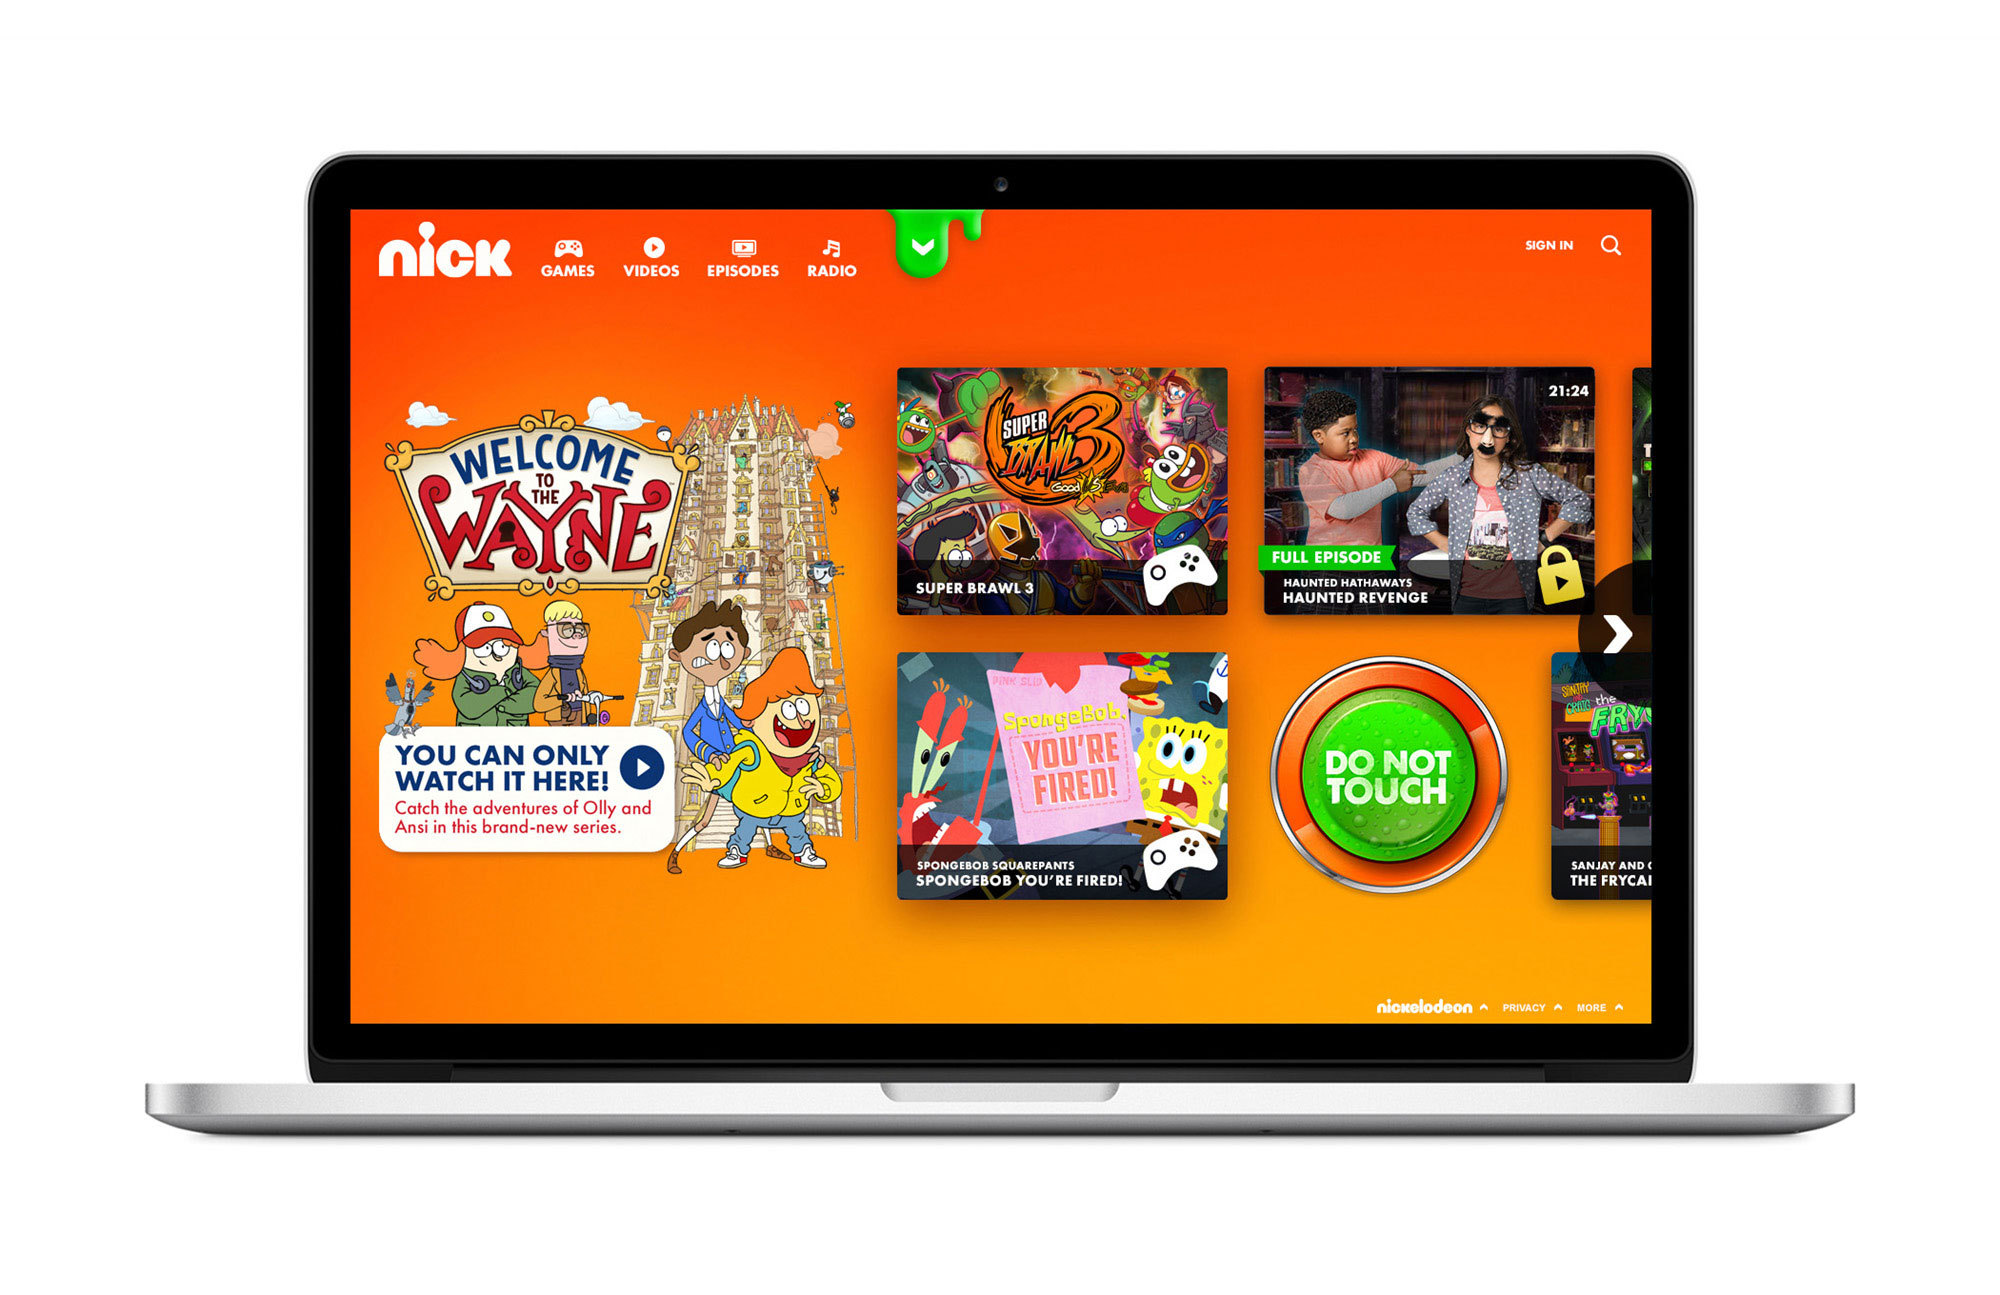 Nickelodeon's new Nick.com live today (Graphic: Business Wire)